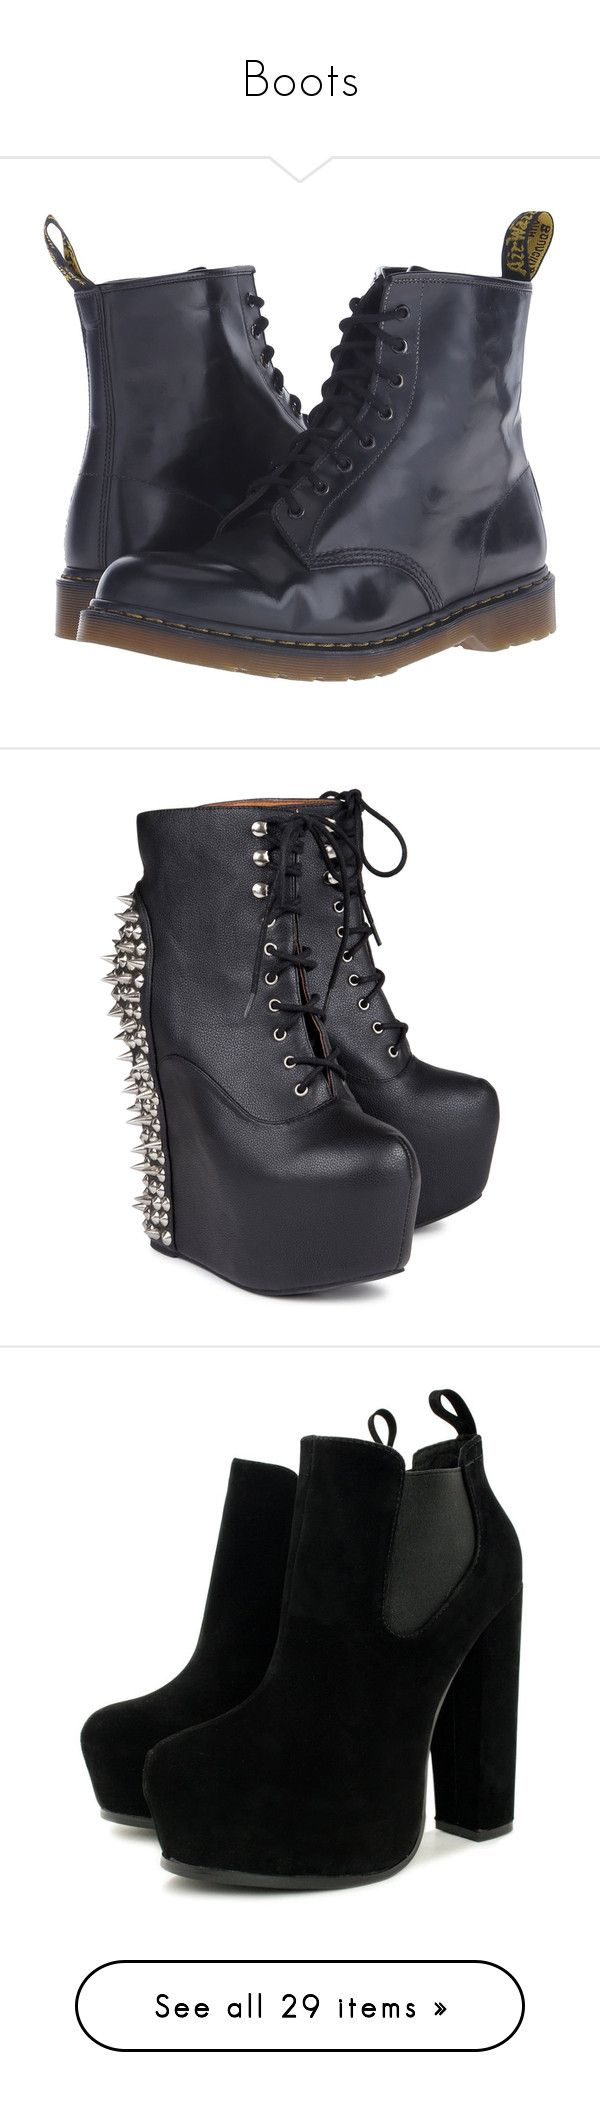 """""""Boots"""" by selinalindroth ❤ liked on Polyvore featuring men's fashion, men's shoes, men's boots, black, mens boots, mens leopard print shoes, dr martens mens boots, mens black boots, mens shoes and shoes"""